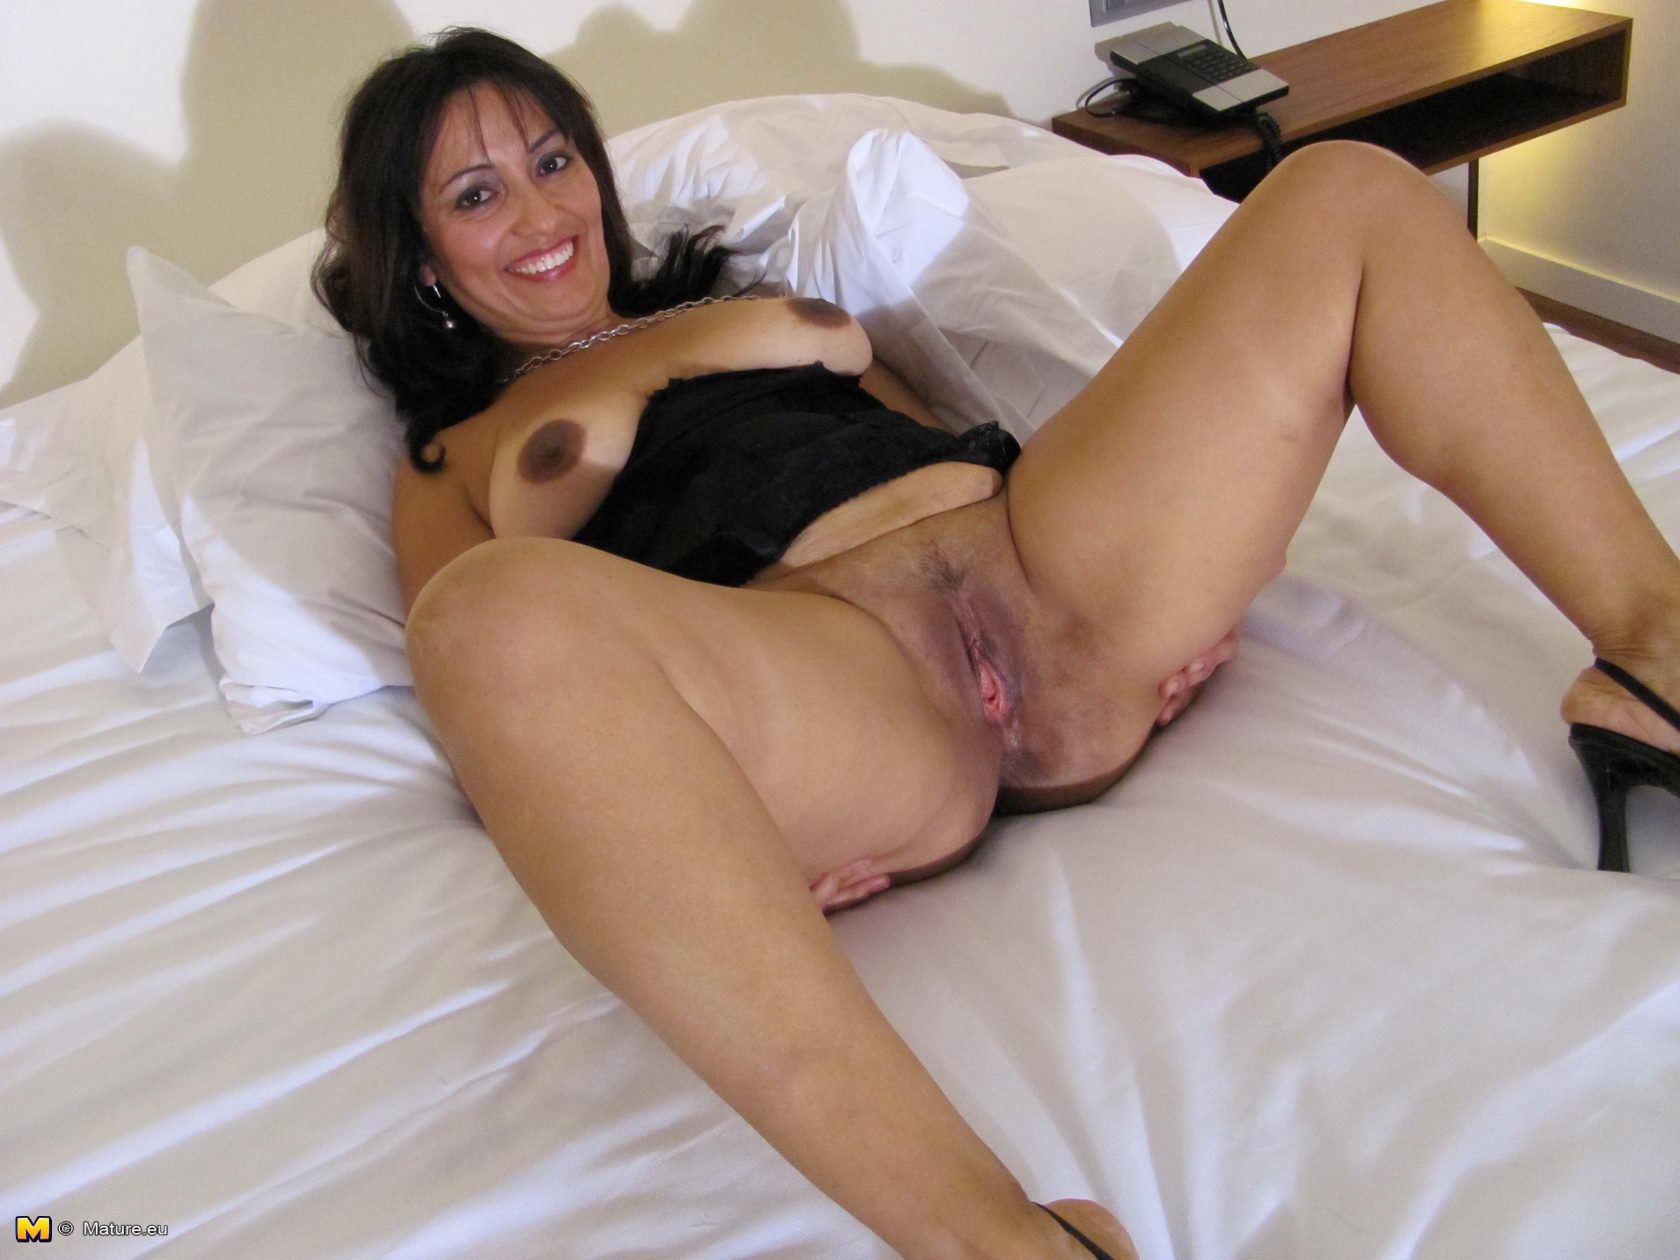 Angy takes big cock anally 10